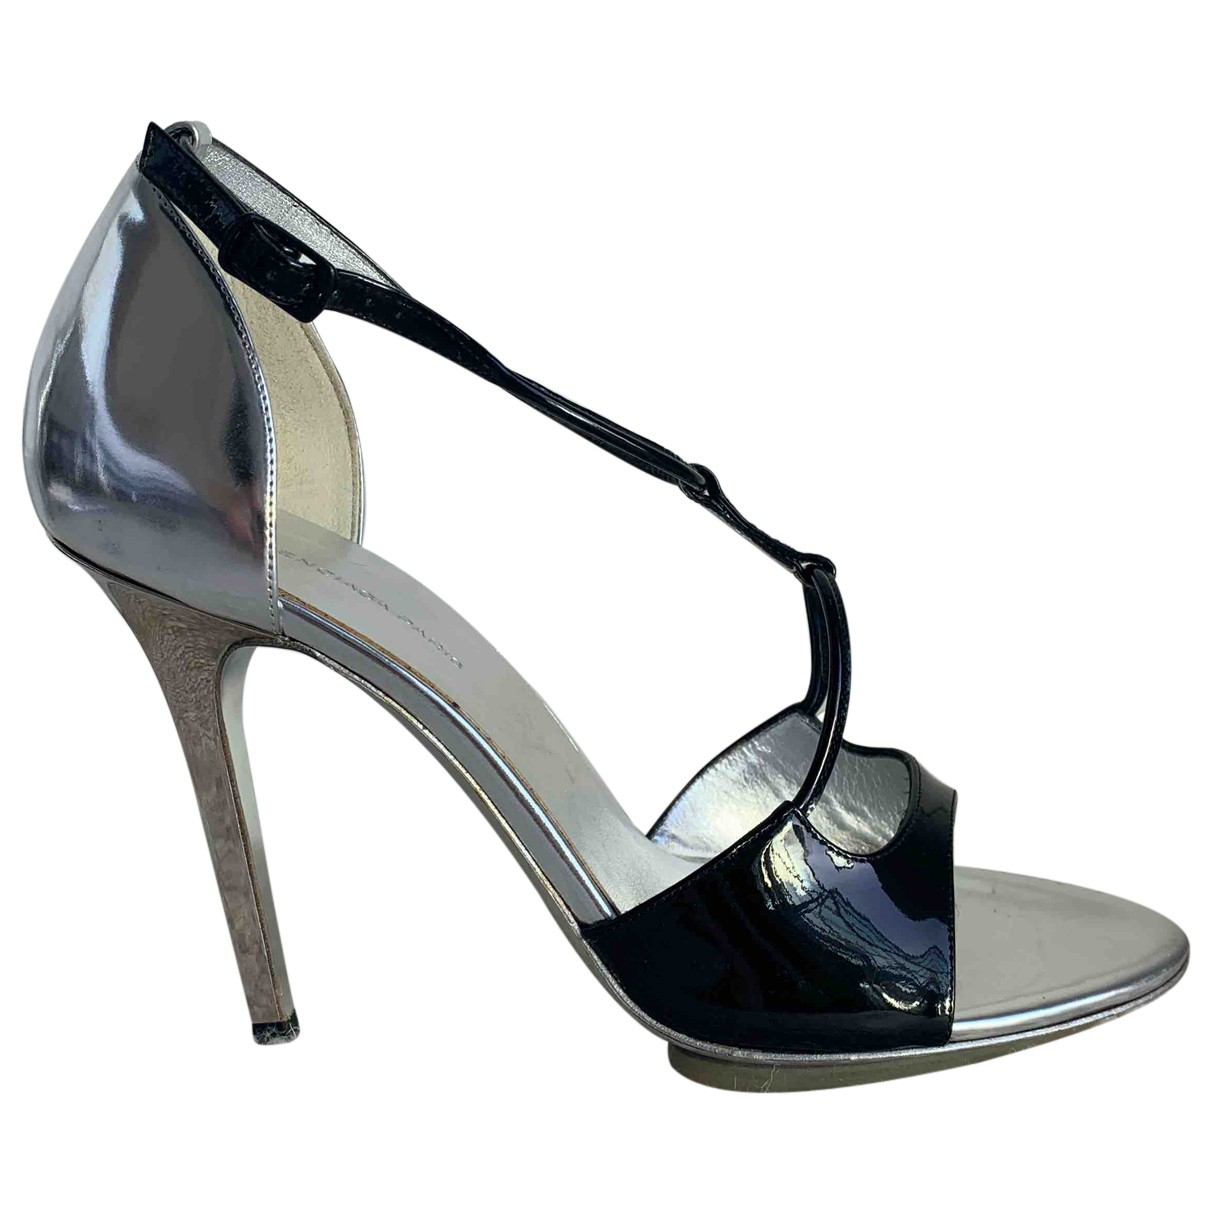 Balenciaga N Black Patent leather Sandals for Women 38.5 EU